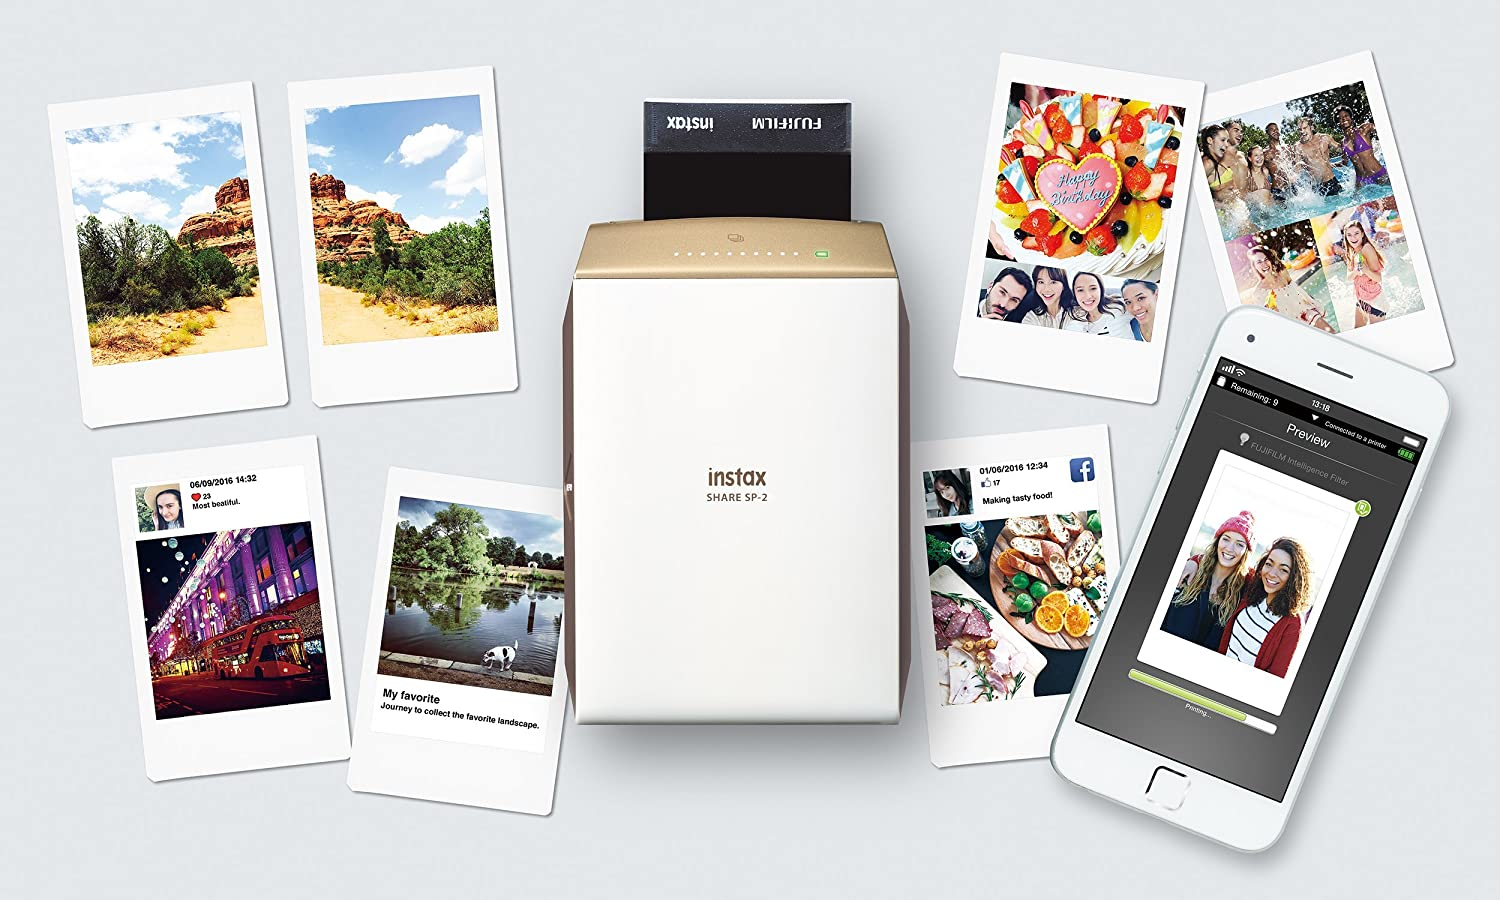 Amazon.com: Fujifilm INSTAX Share SP-2 - Impresora de ...